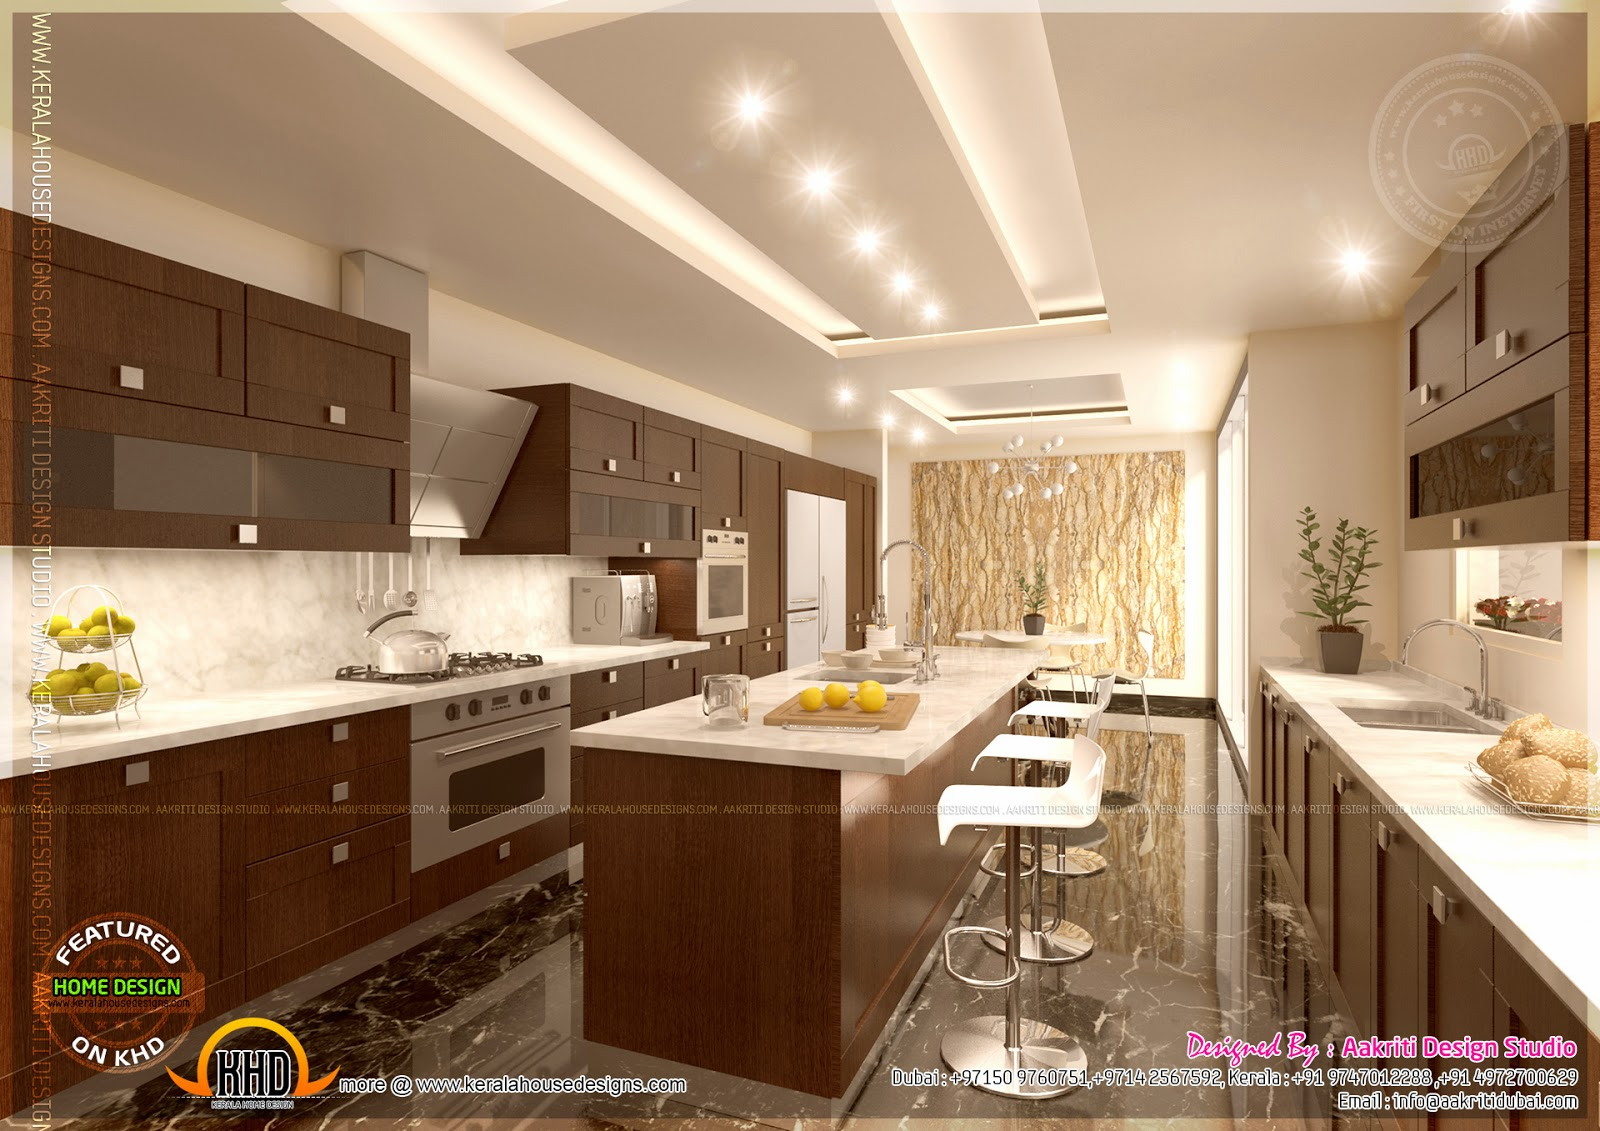 Kitchen designs by aakriti design studio kerala home for Kitchen design ideas photos